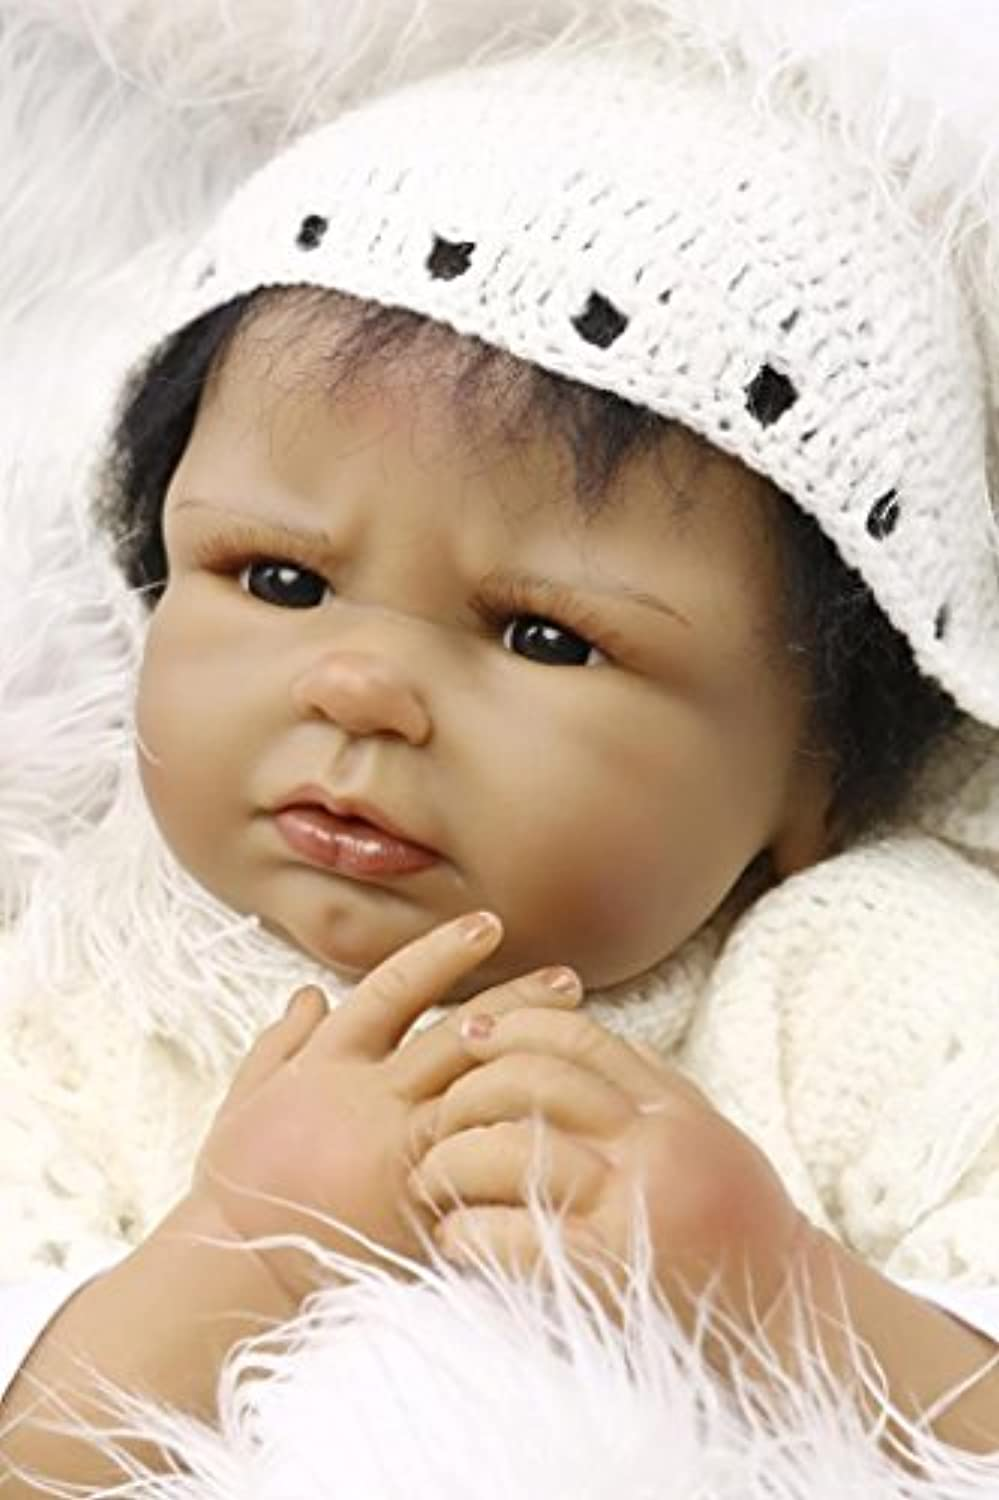 Rareシリコンブラック人形Lifelike Reborn African Baby Girl Look Real Collectible Toyギフト、22インチ